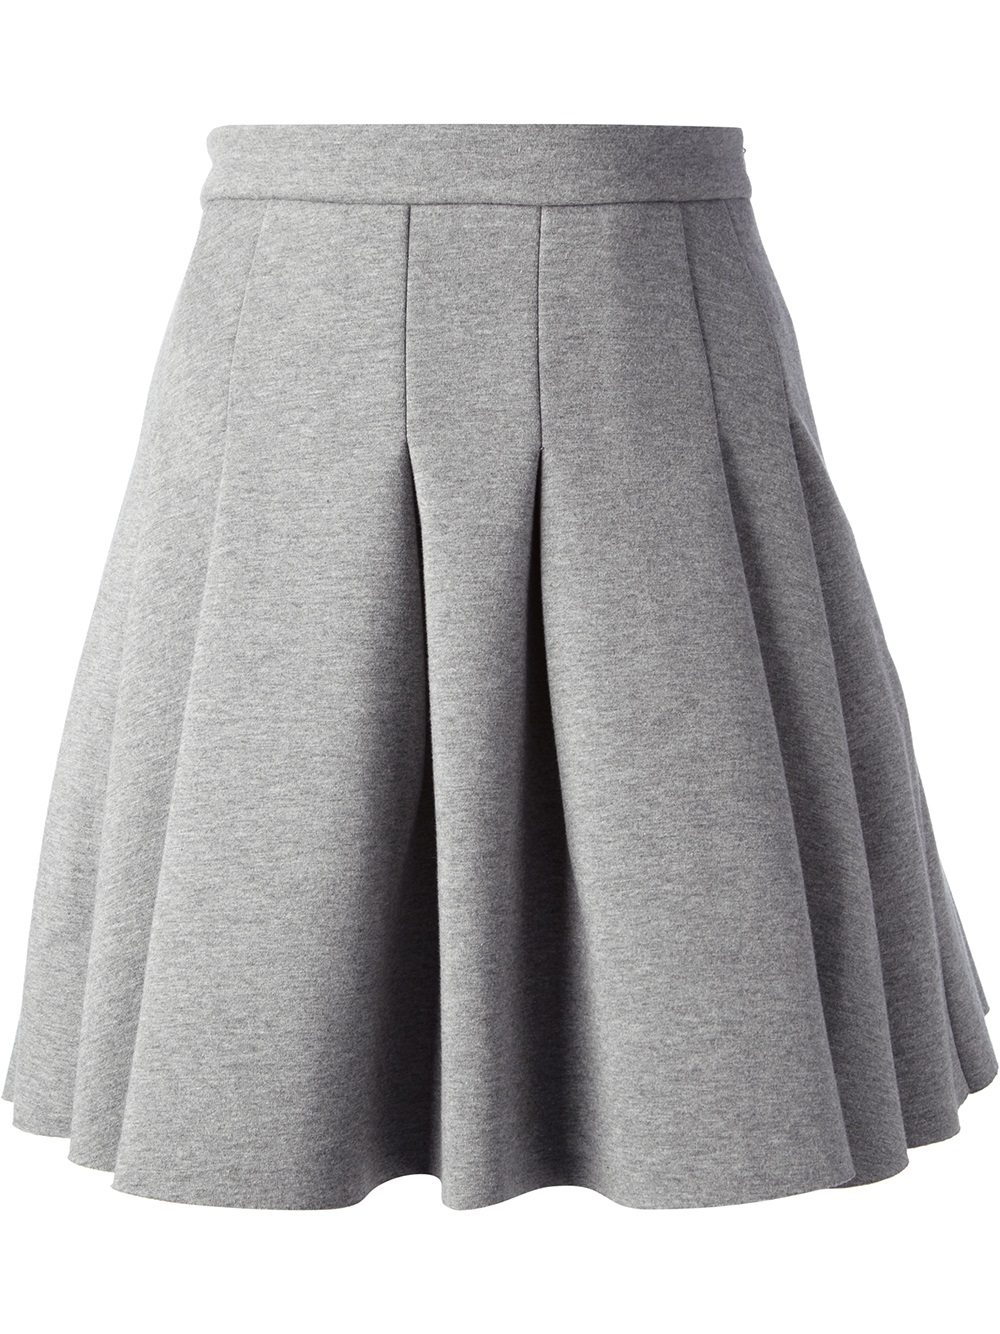 t by wang pleated skirt in gray grey lyst